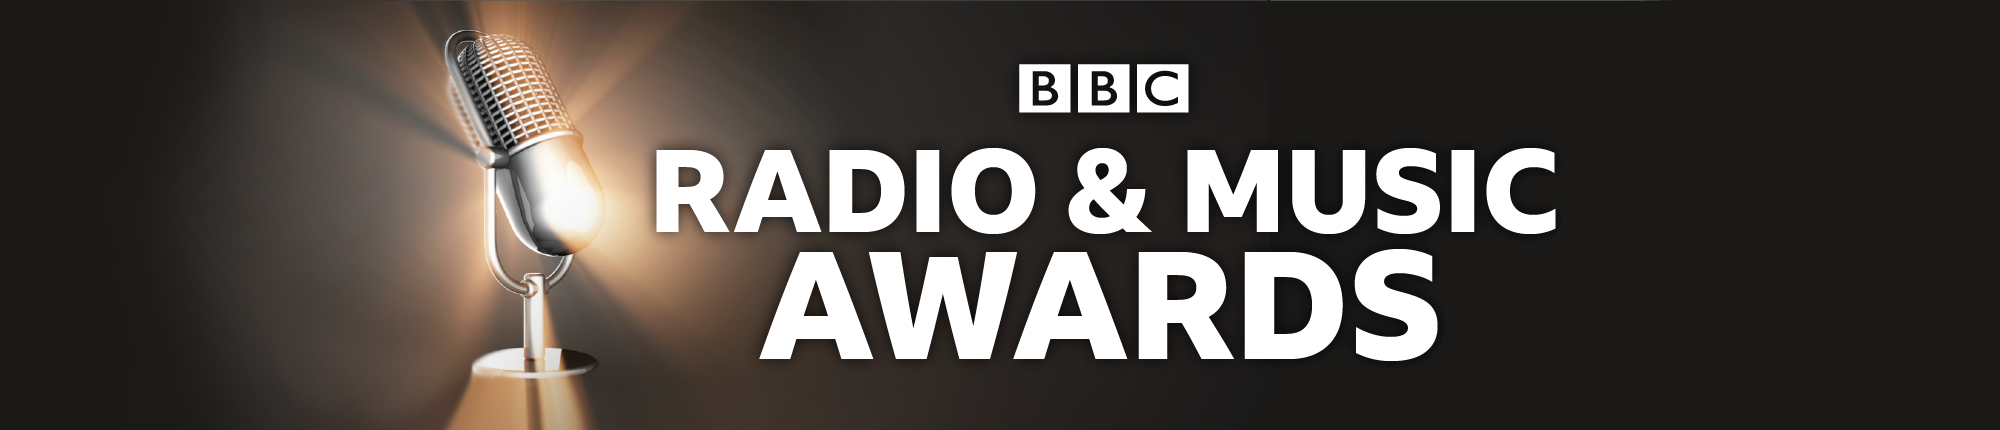 BBC Radio & Music Awards